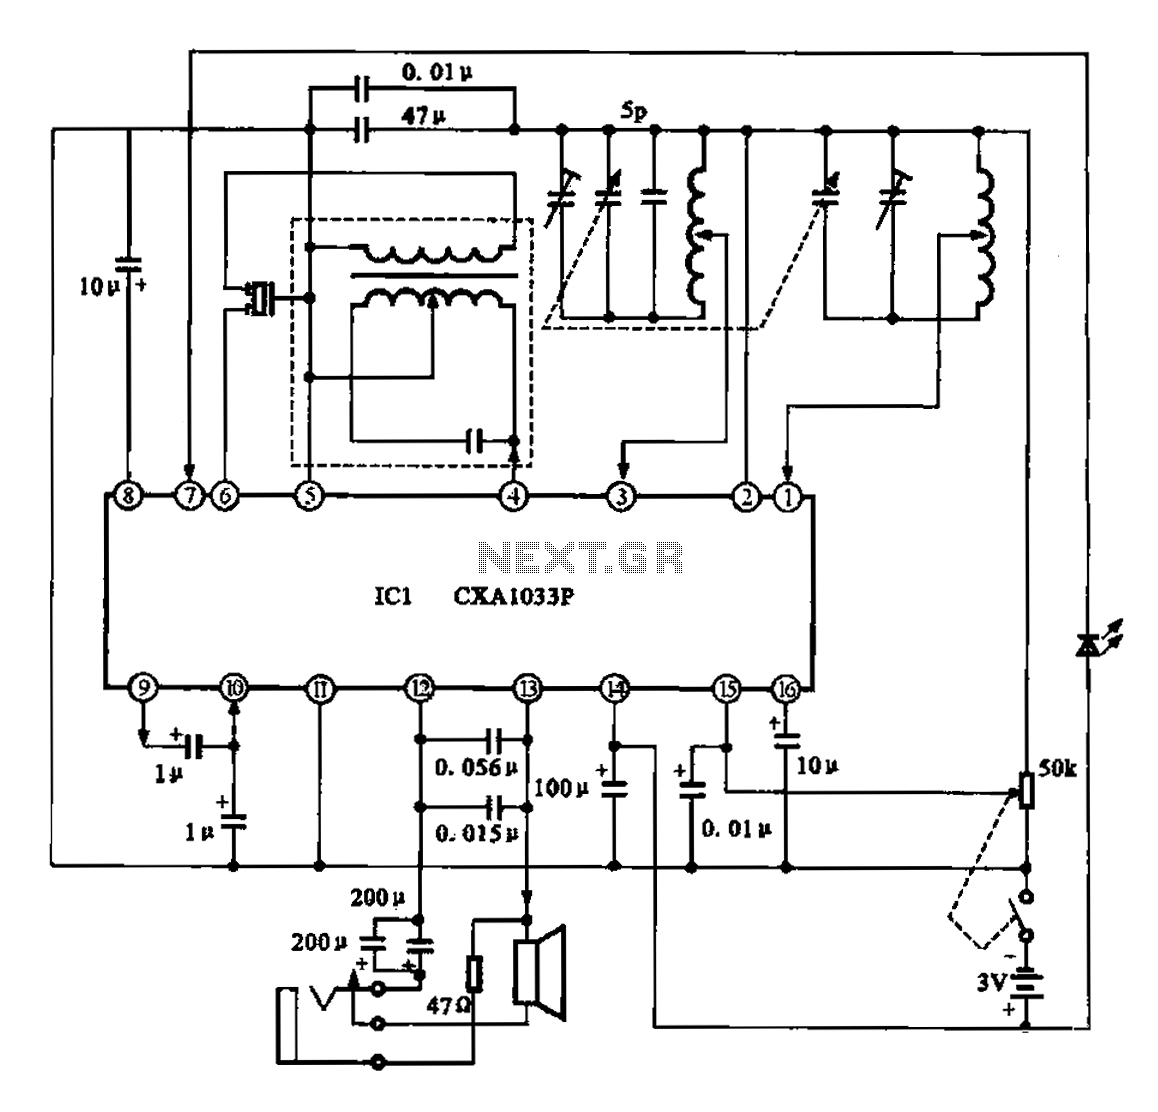 am radio circuit : RF Circuits :: Next.gr on radio wiring, antique radio diagrams, radio invention, radio telescope diagram, cb radio diagrams, radio circuit diagram, radio transistors, radio receiver diagram, radio wire, radio components, radio resistors, radio system diagram, radio ginen, crystal radio building diagrams, radio schematic symbols, wiring diagrams, telephone circuits diagrams, simple electrical diagrams, components of electrical circuit diagrams, radio listen live,